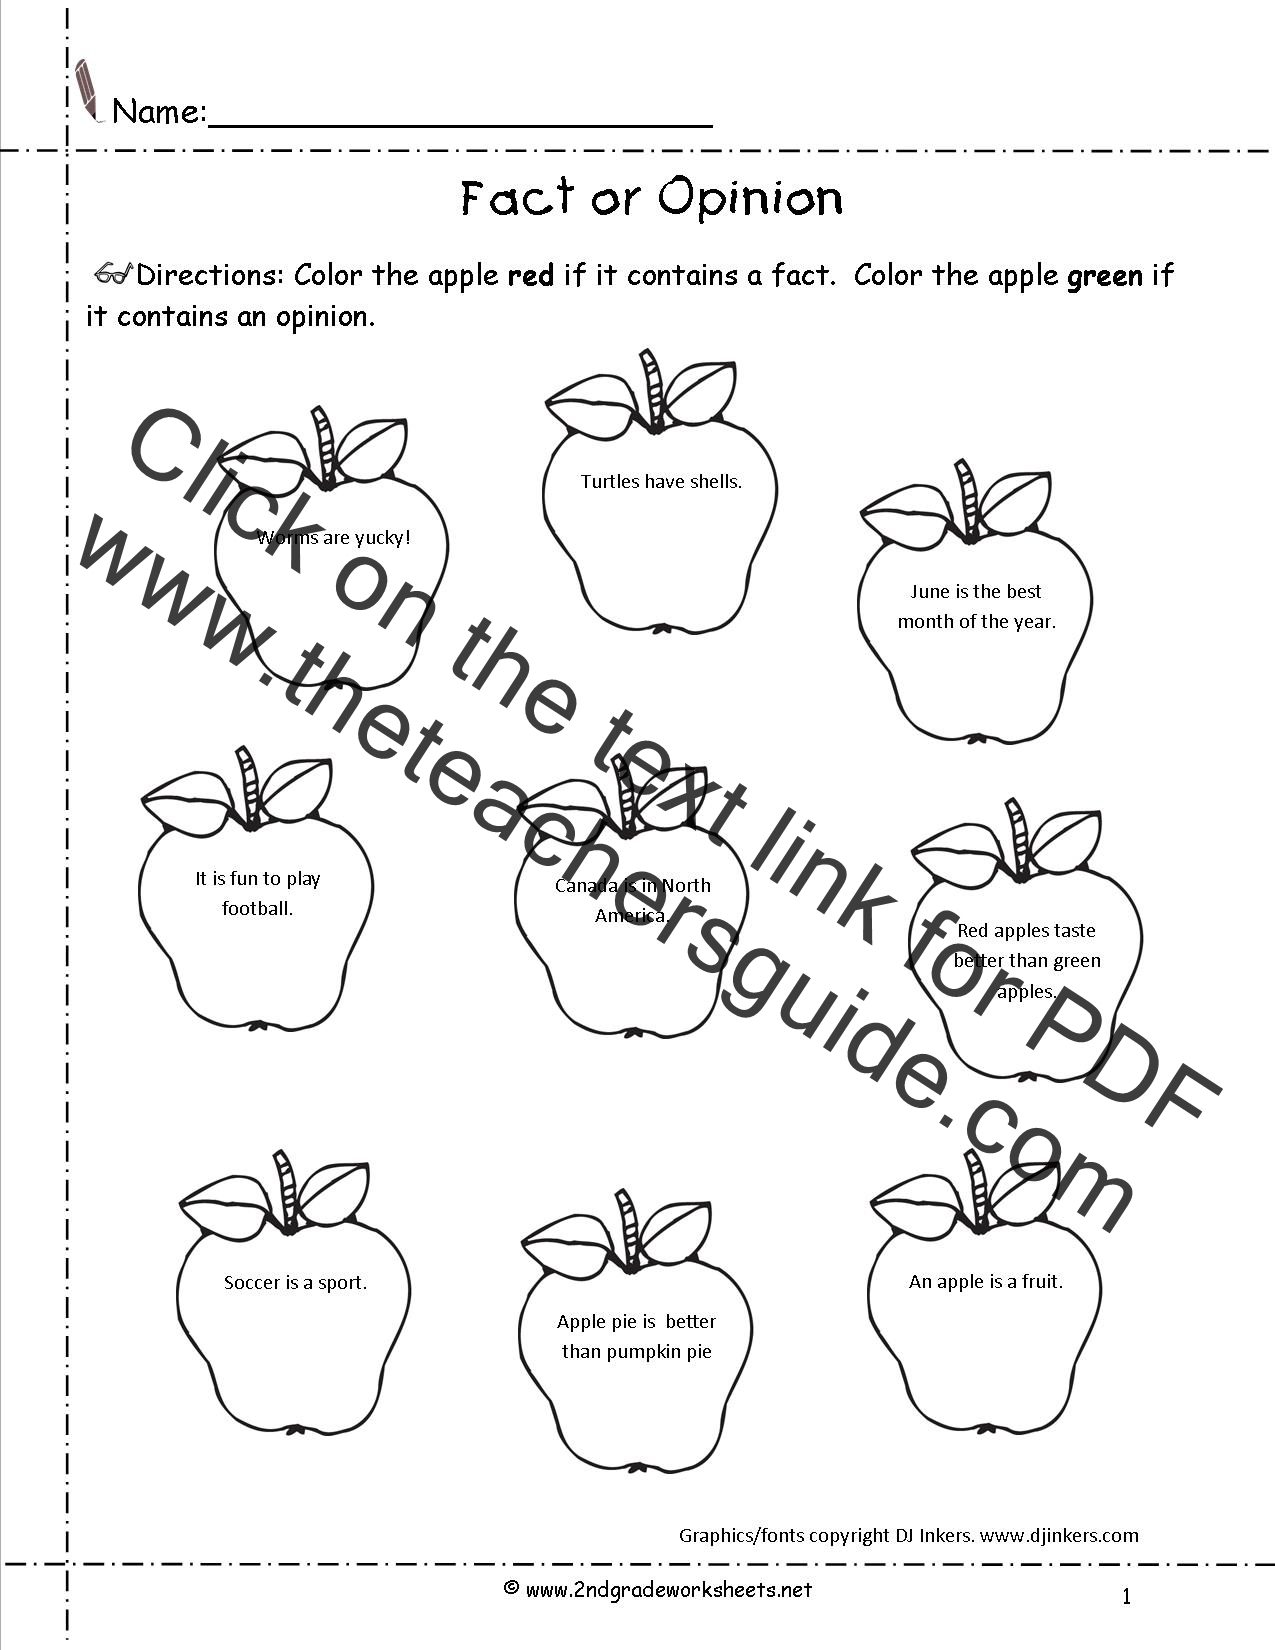 Worksheets Fact And Opinion Worksheets ccss ela literacy w 2 1 worksheets fact or opinion worksheet